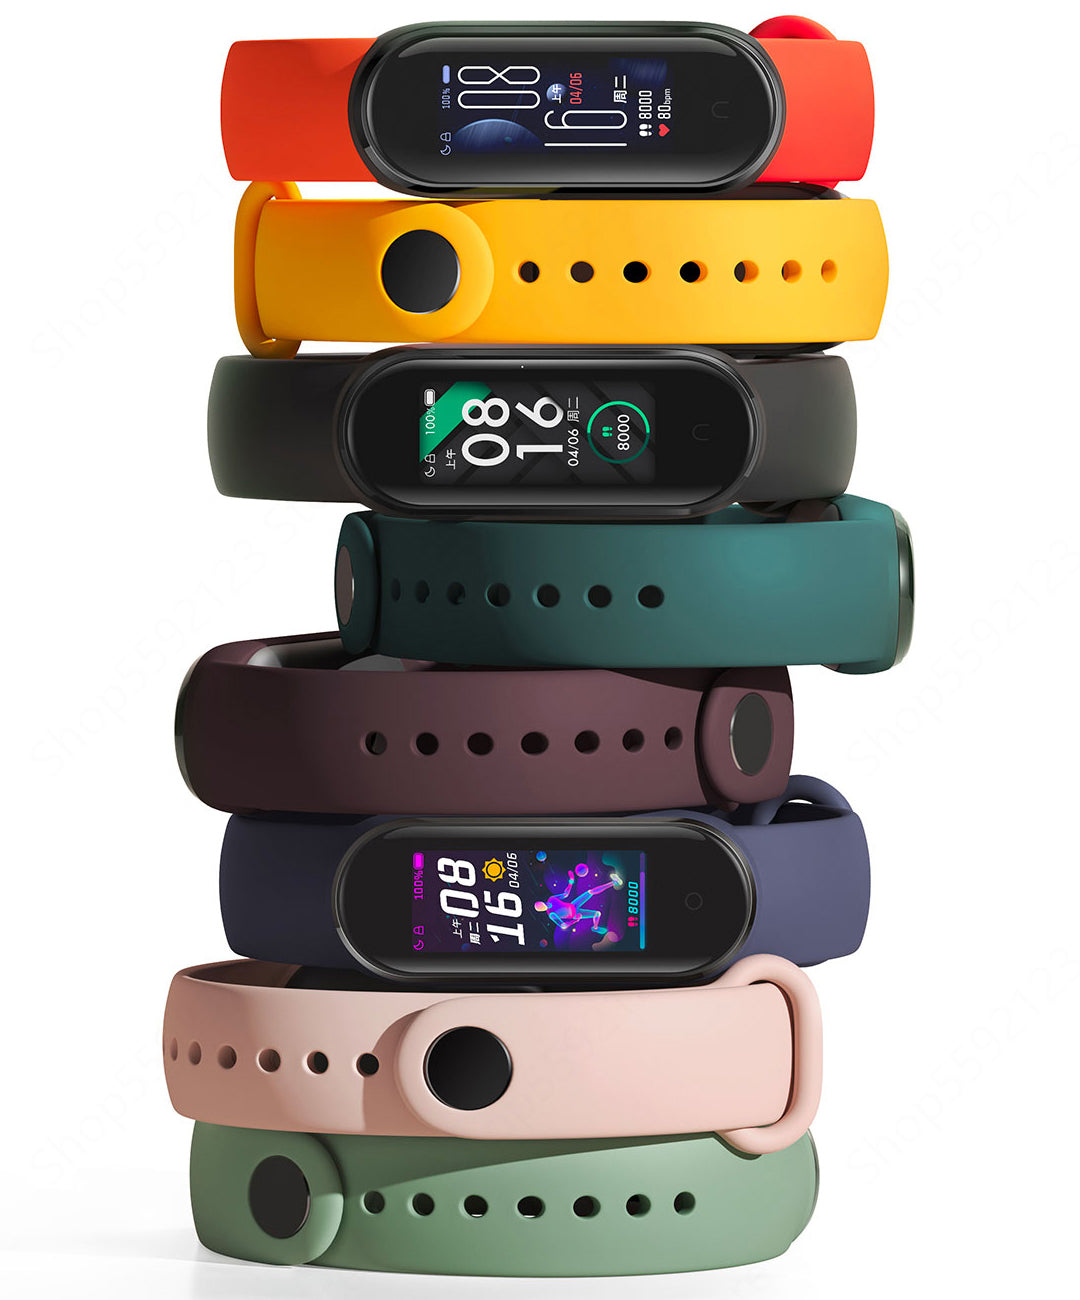 mi band 5 furper store buy online in india colors